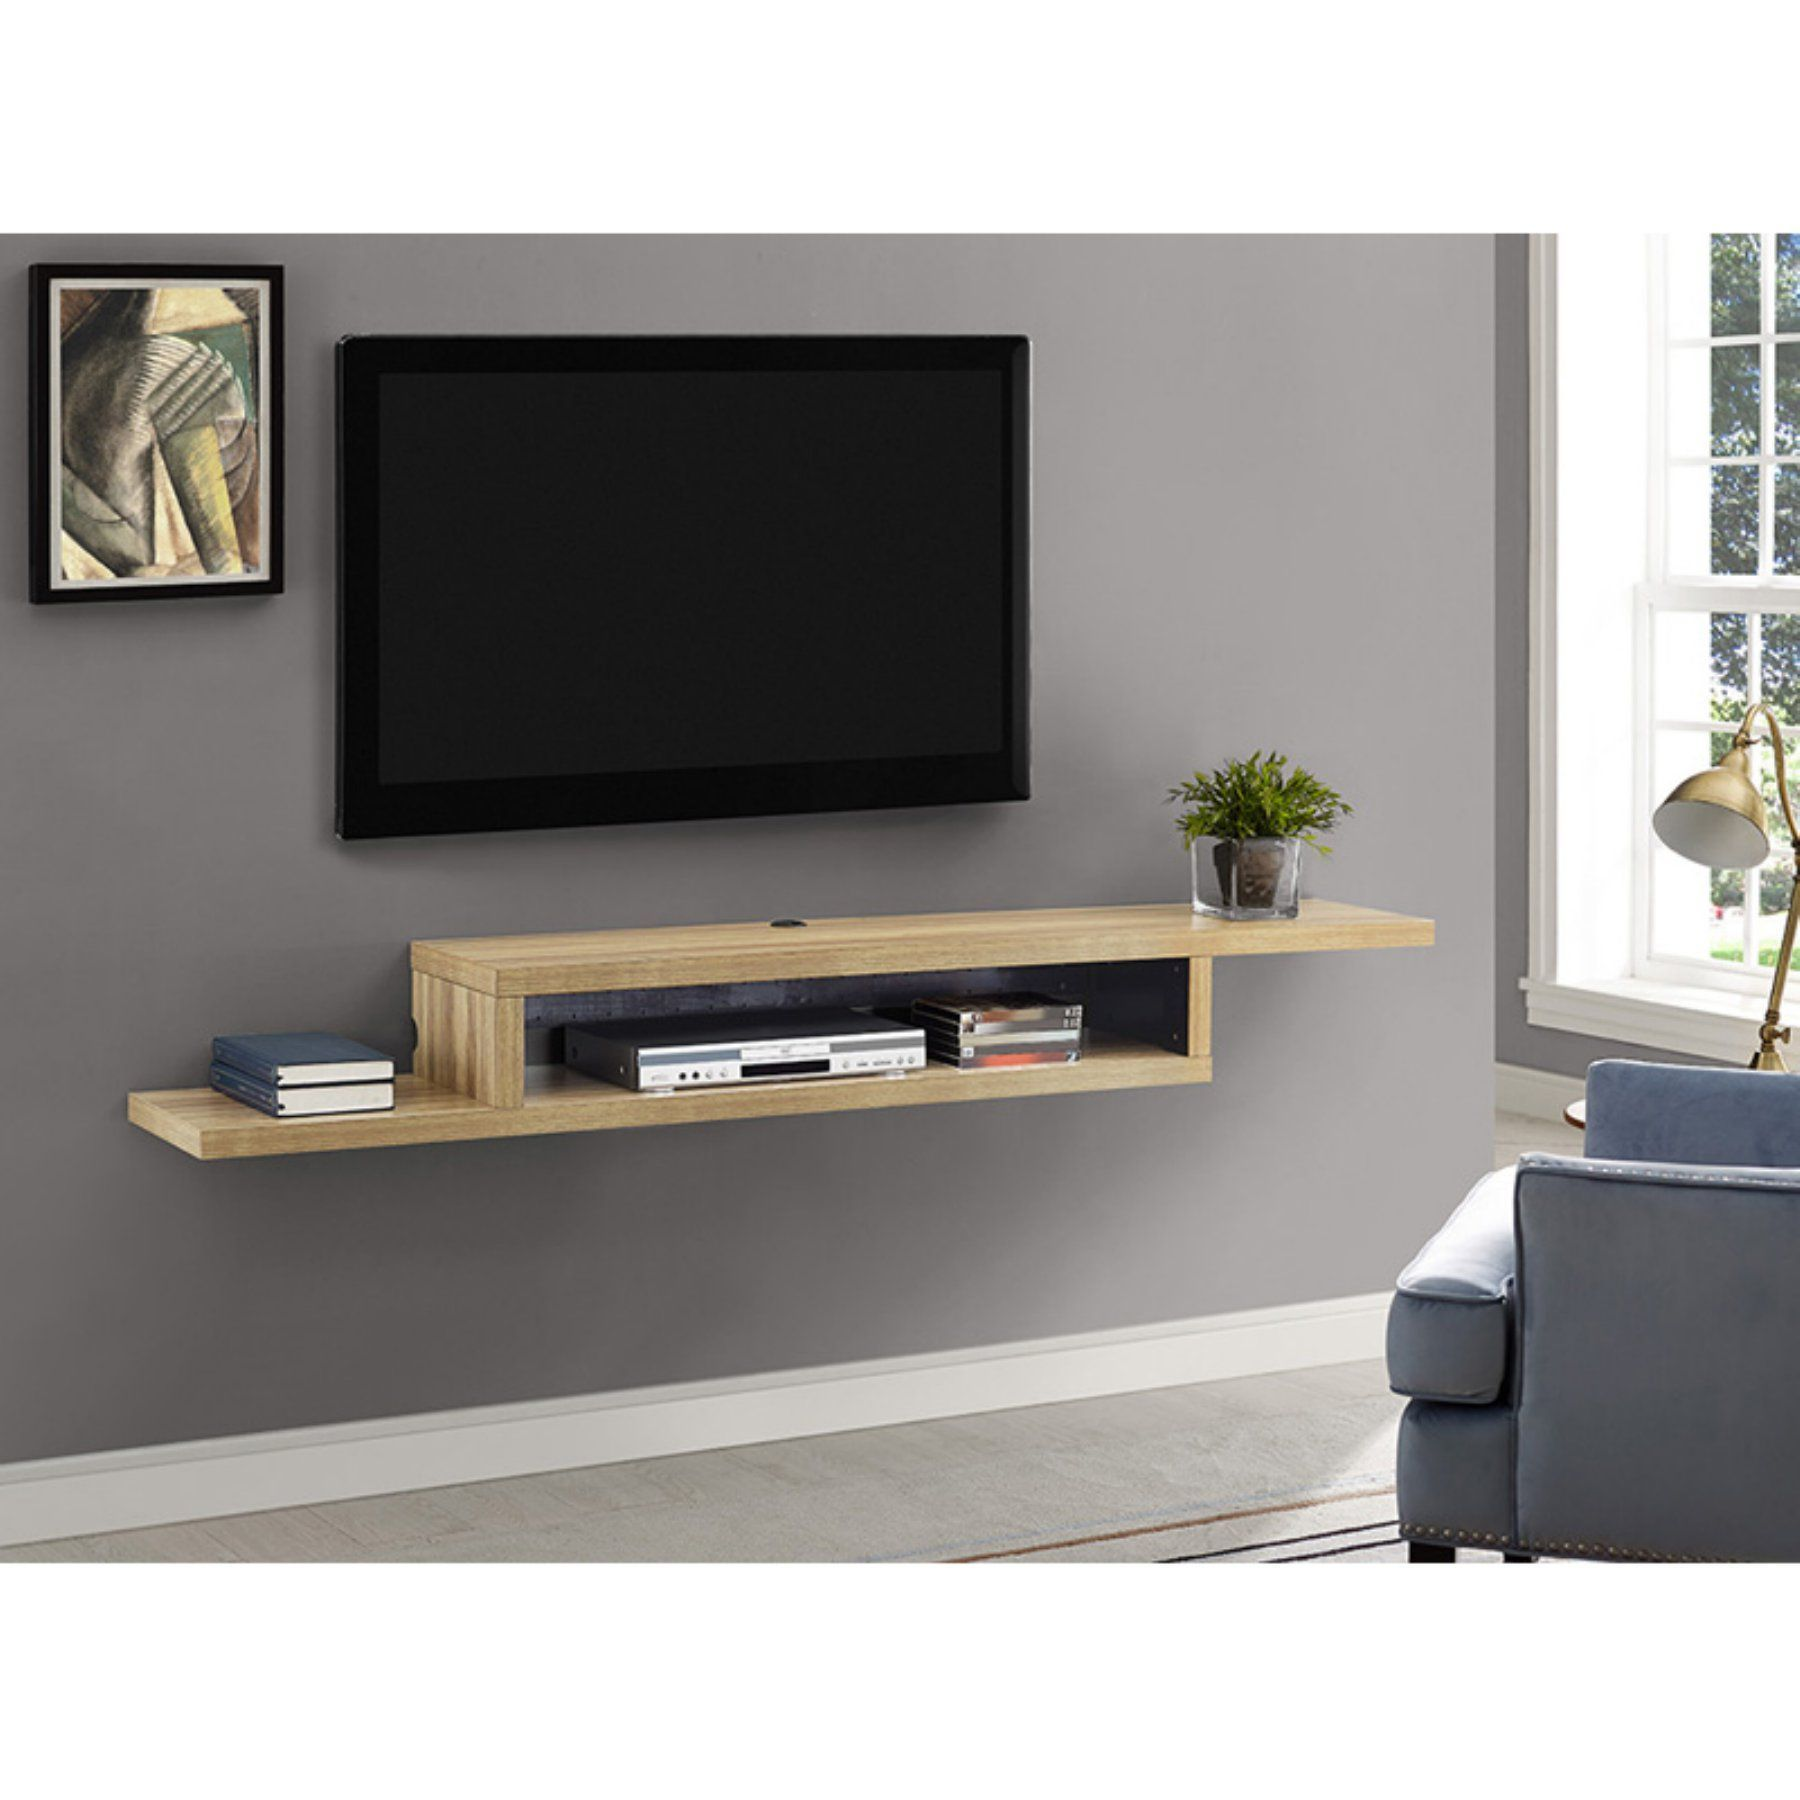 Martin Furniture 8 in. Asymmetrical Wall Mounted TV Shelf